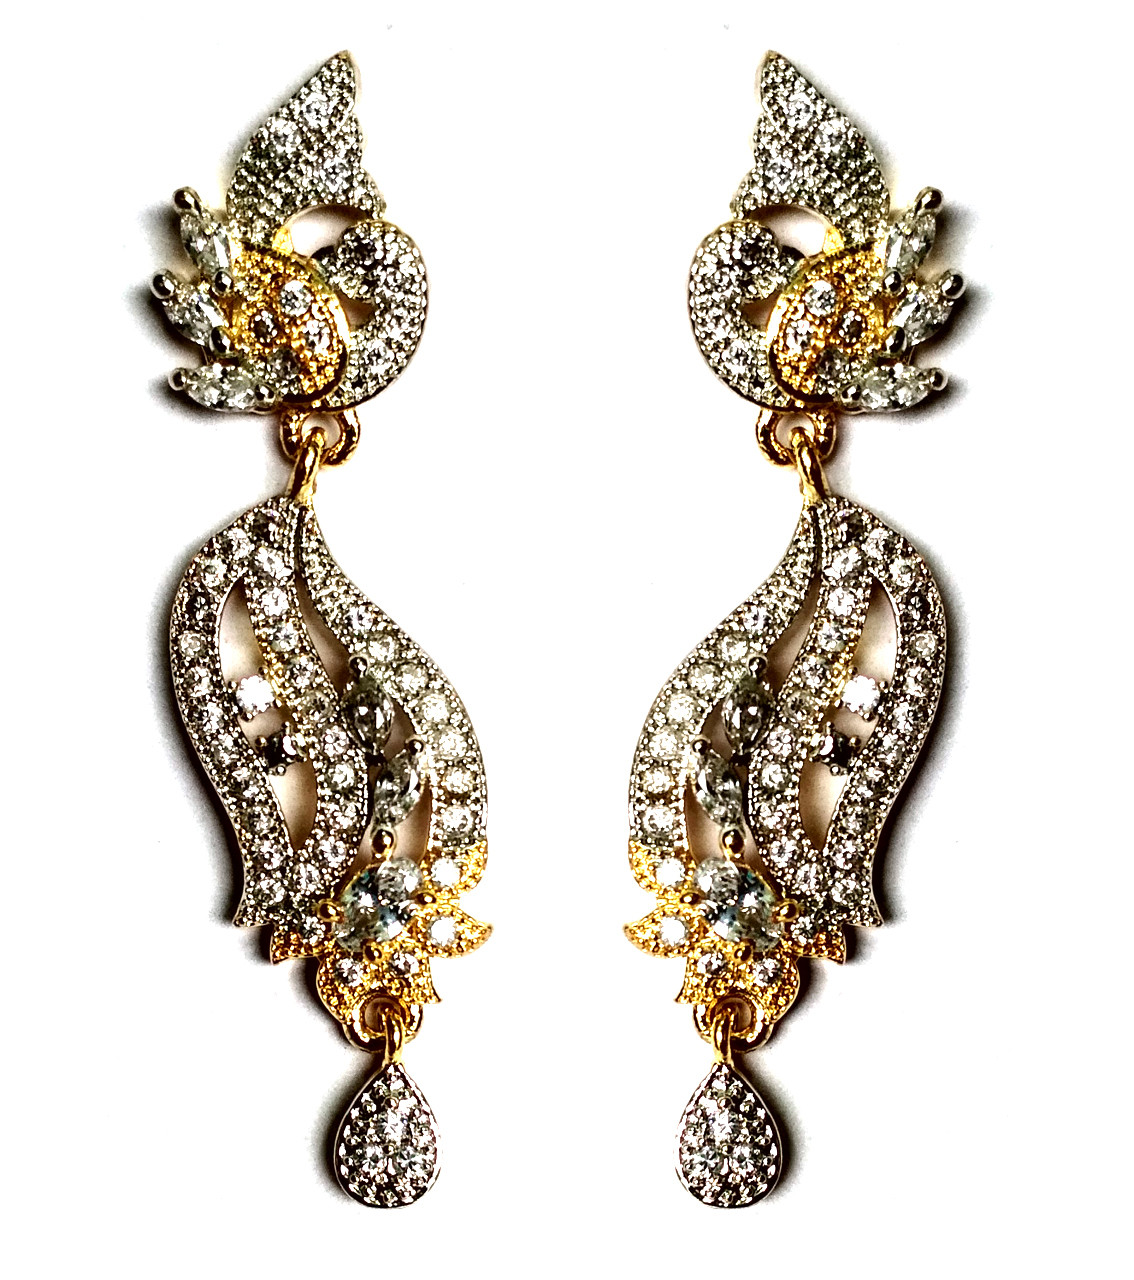 American Diamond Earrings From Kolkata For Woman & Girls HM07